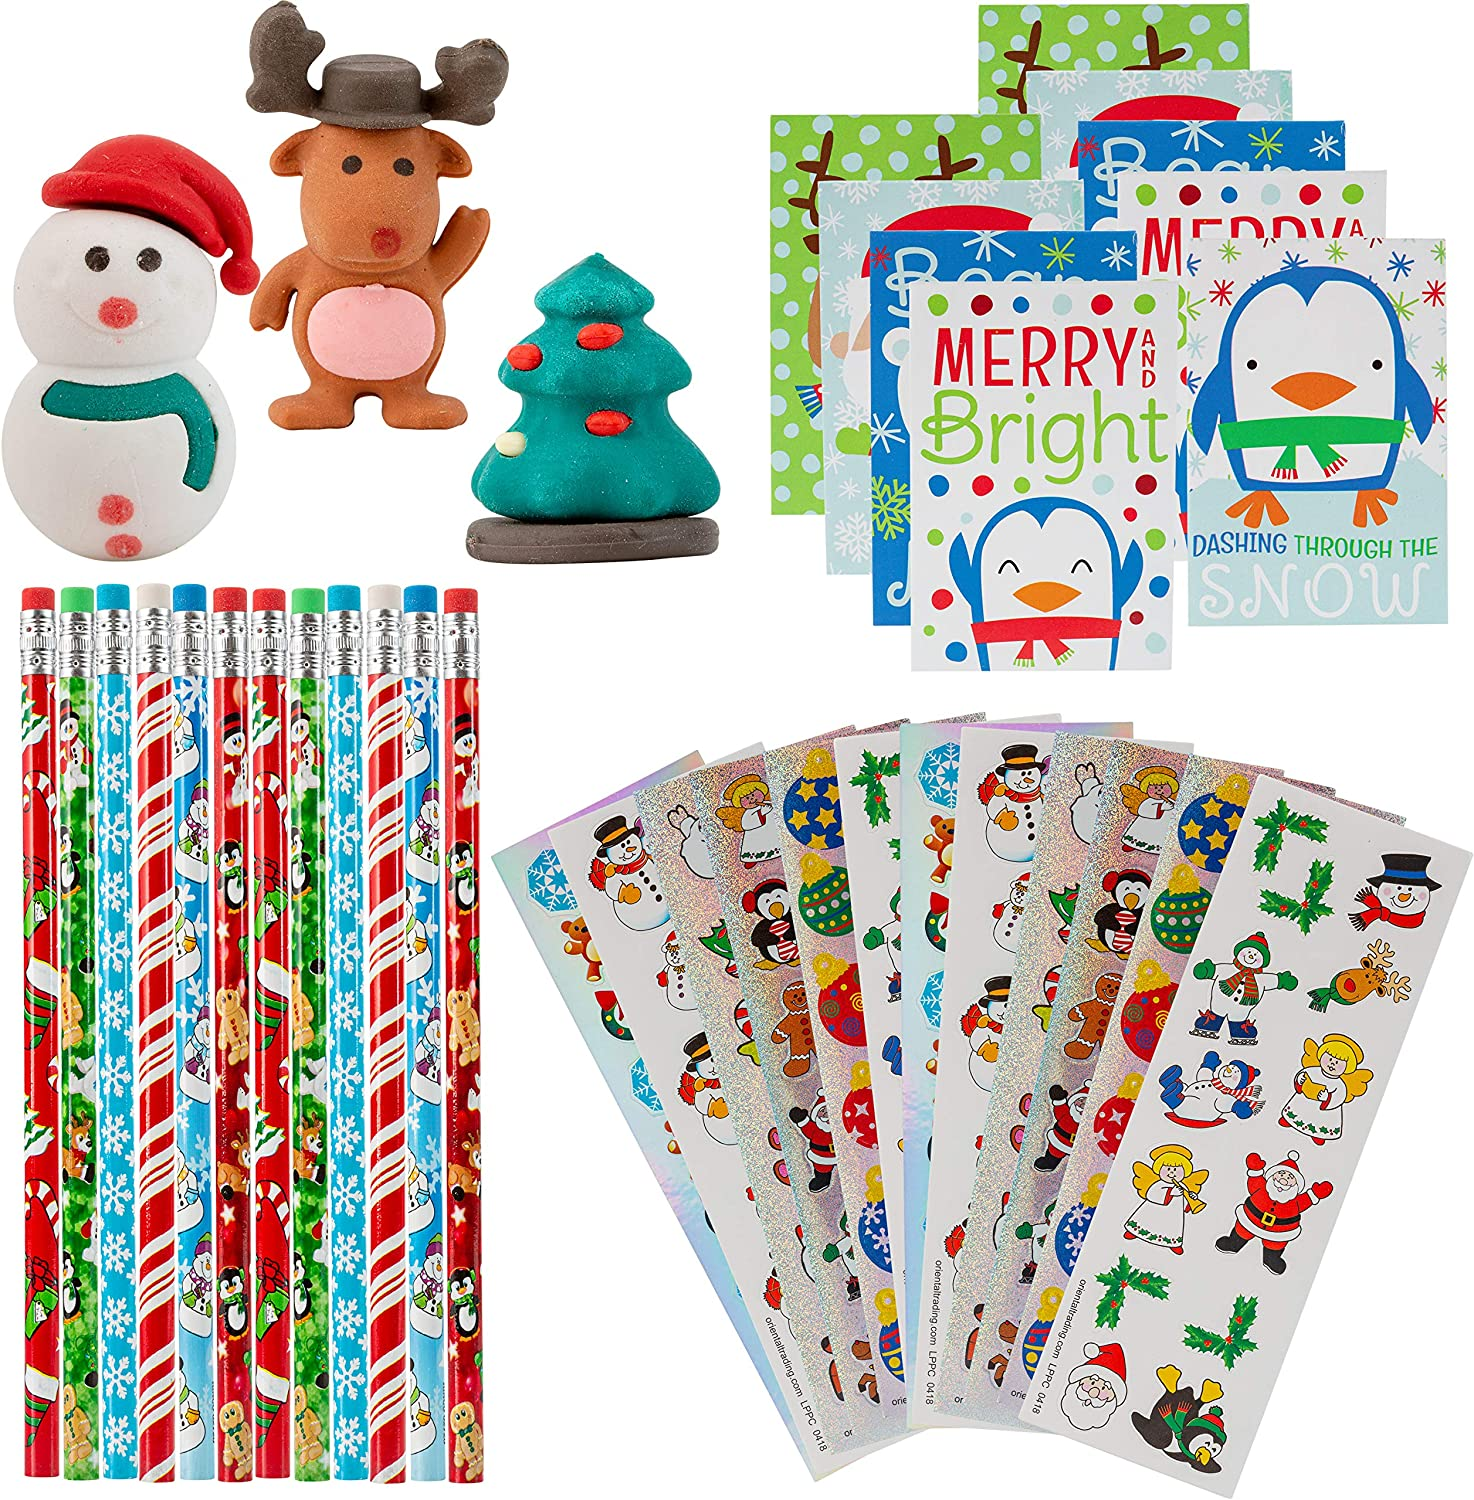 Max 54% OFF FAVONIR Christmas Stationary Party In a popularity Favor 48 †Set Collection